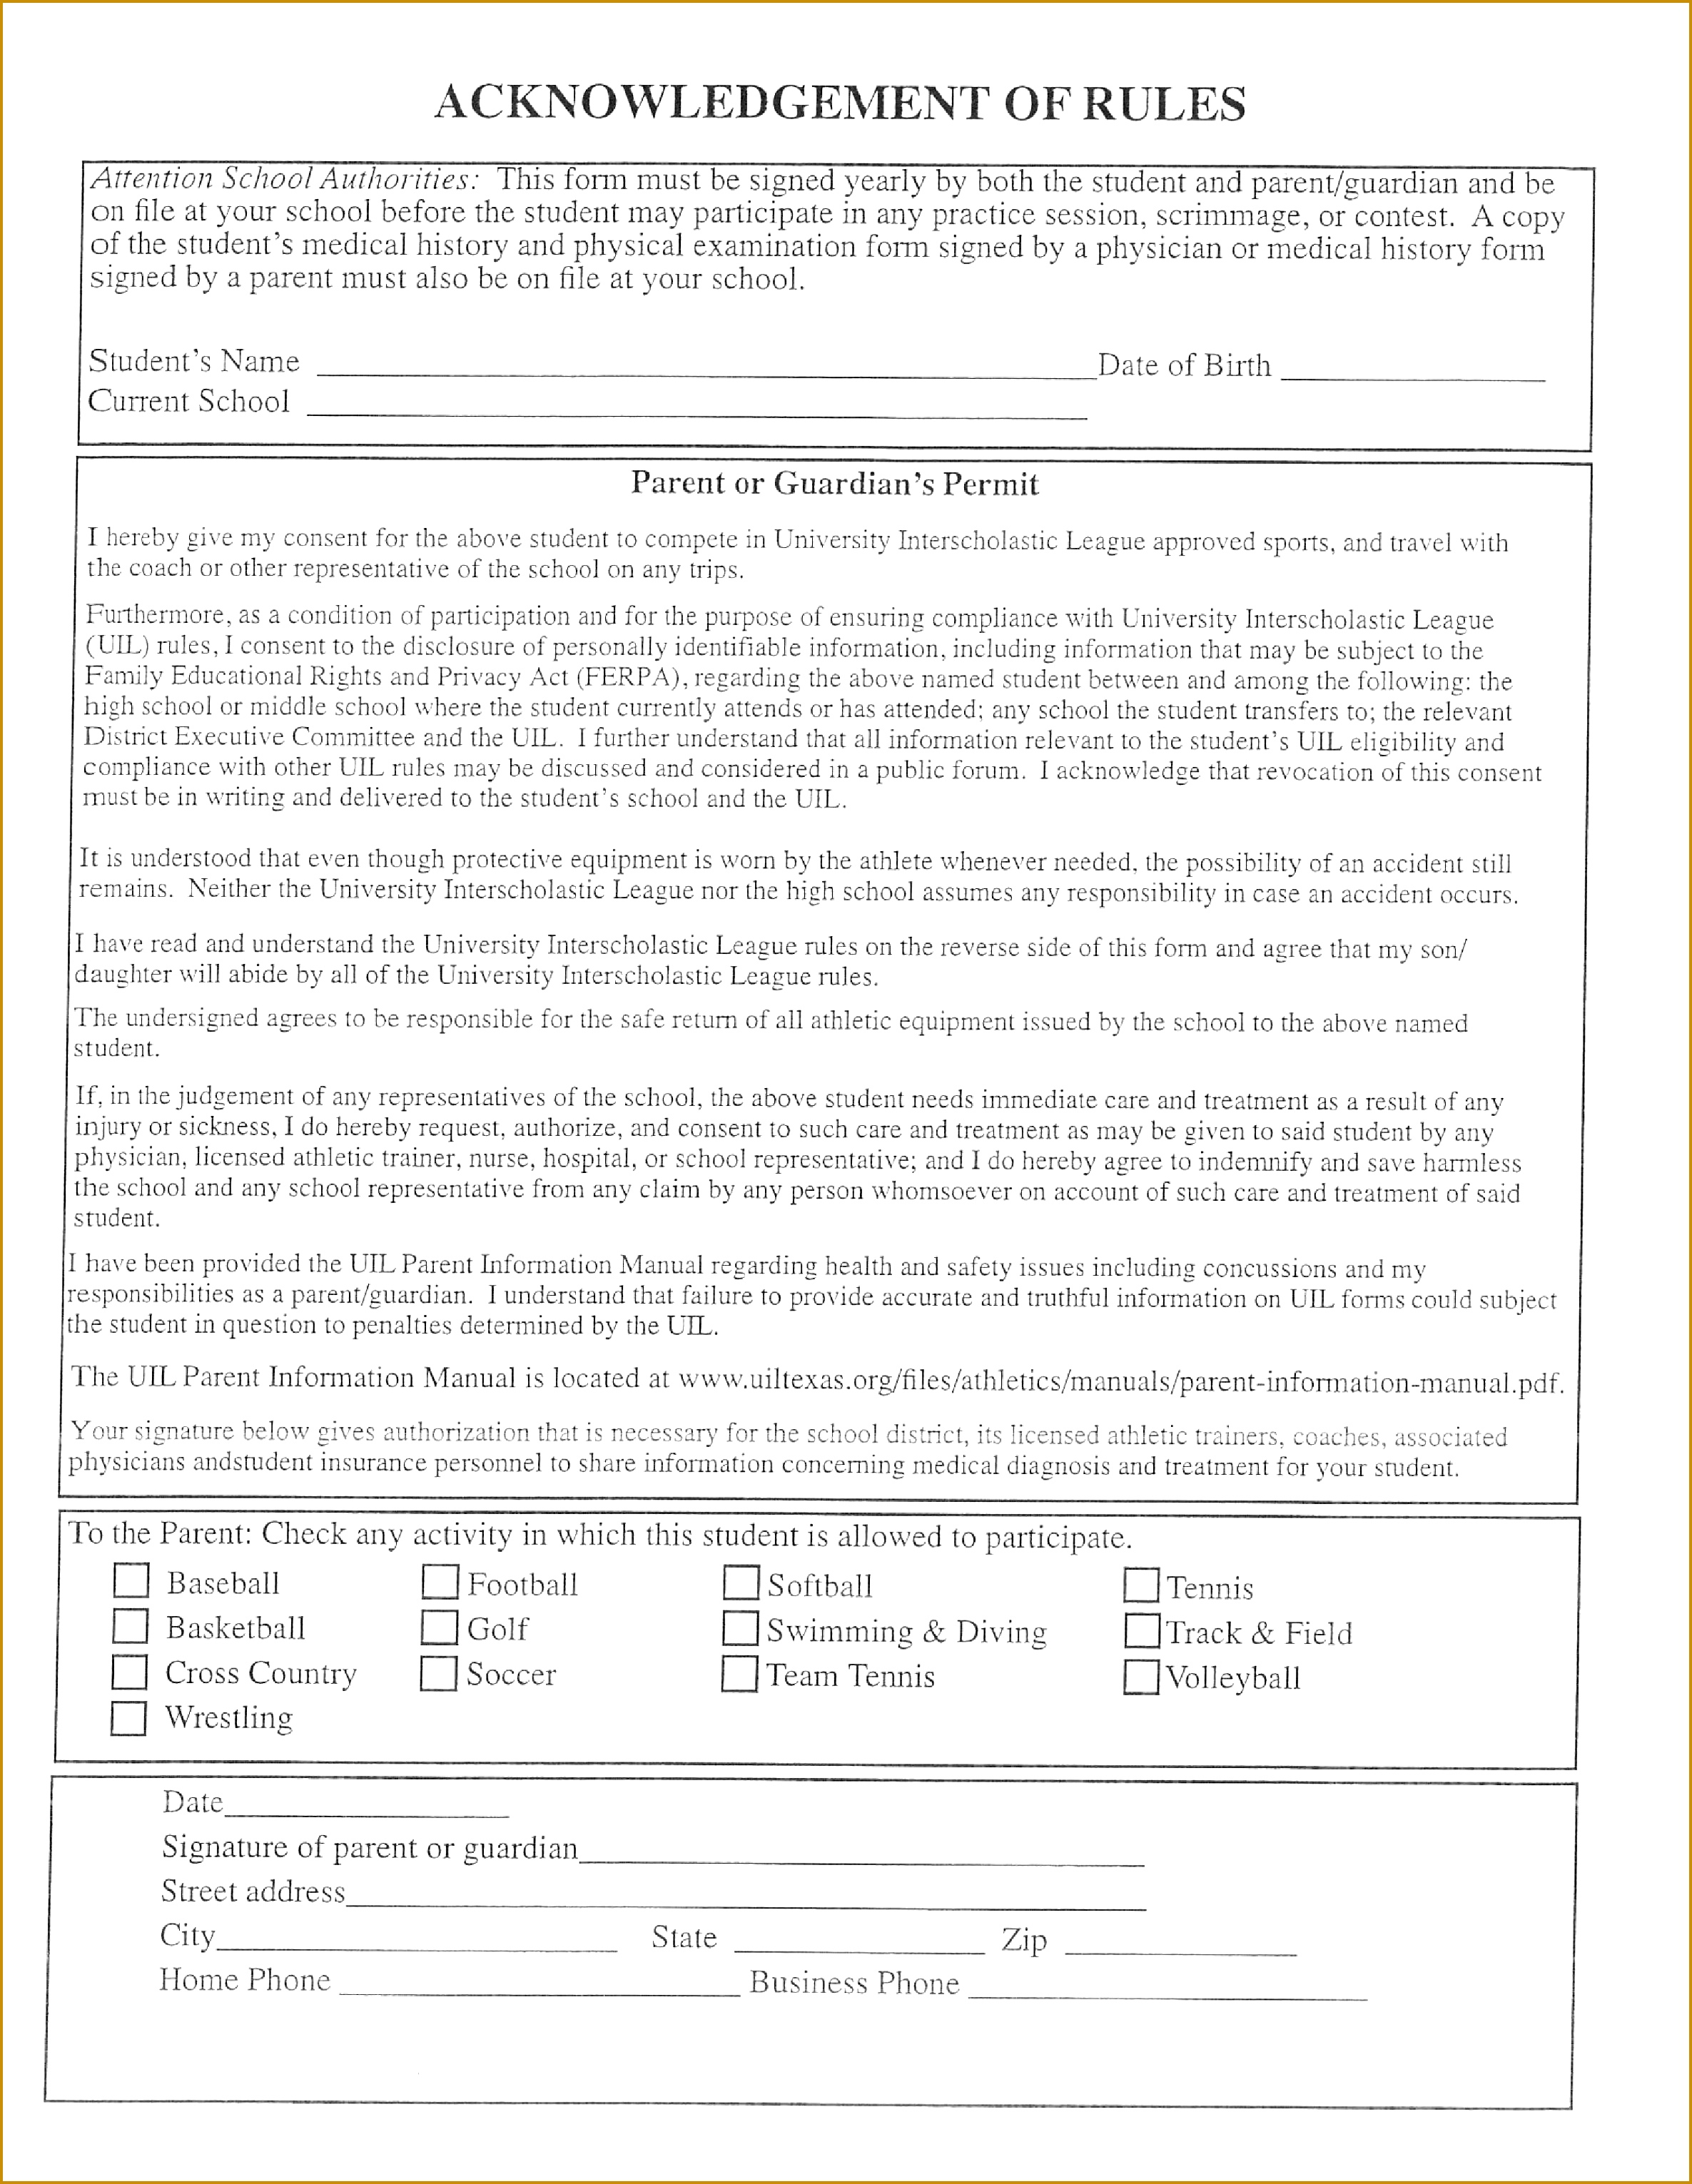 Preparticipation Physical Evaluation form Beautiful Physical forms Hempfield Wrestling form Piaa form Page 1 Three 30612371